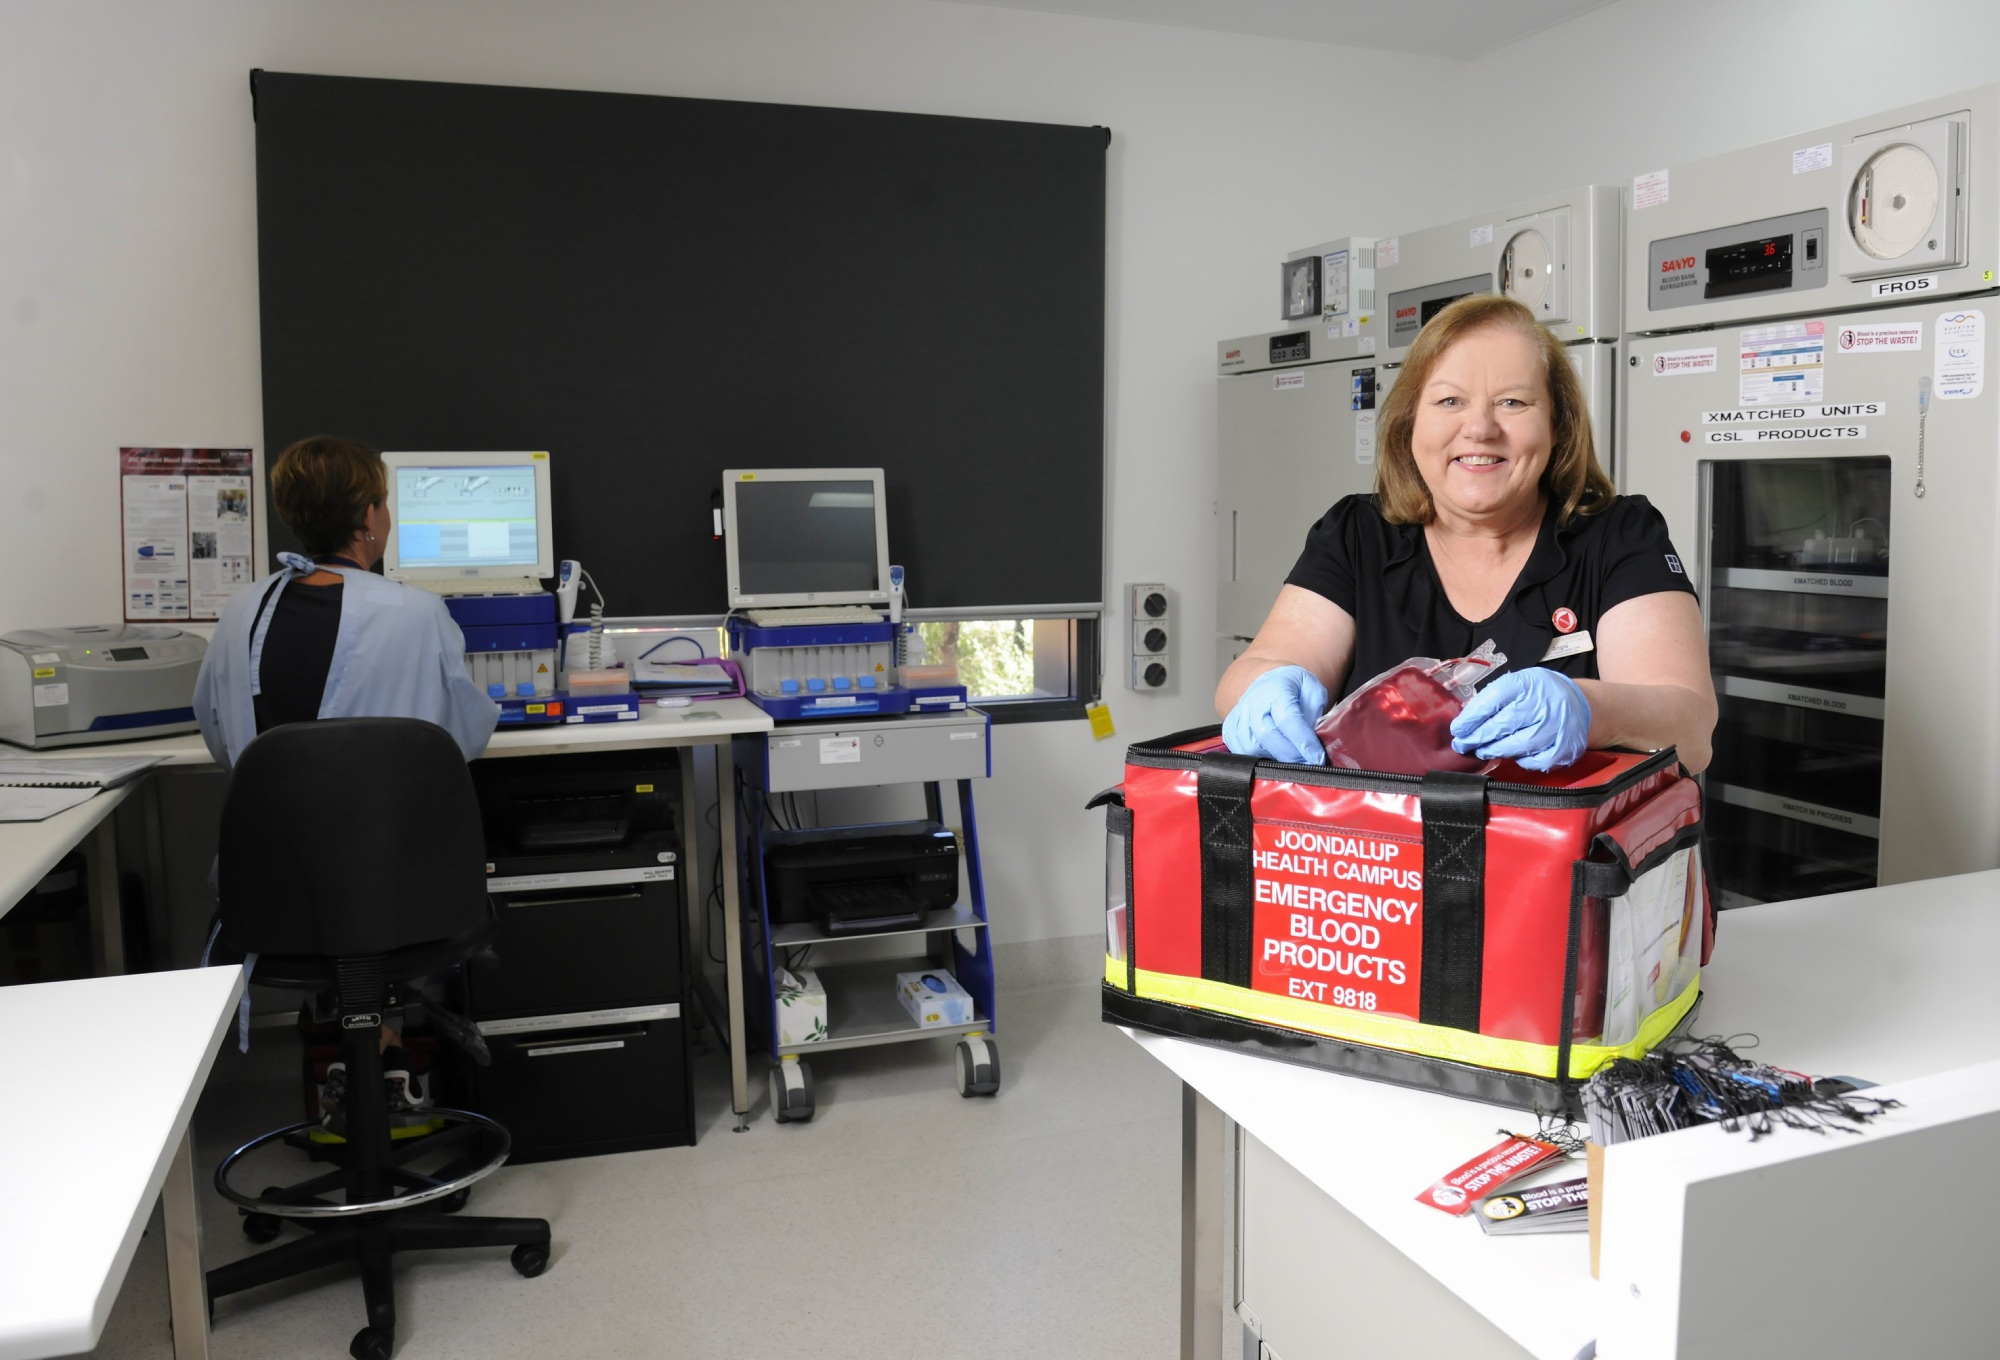 Nurse of the Year Angie Monk won the award for her breakthrough blood management program.